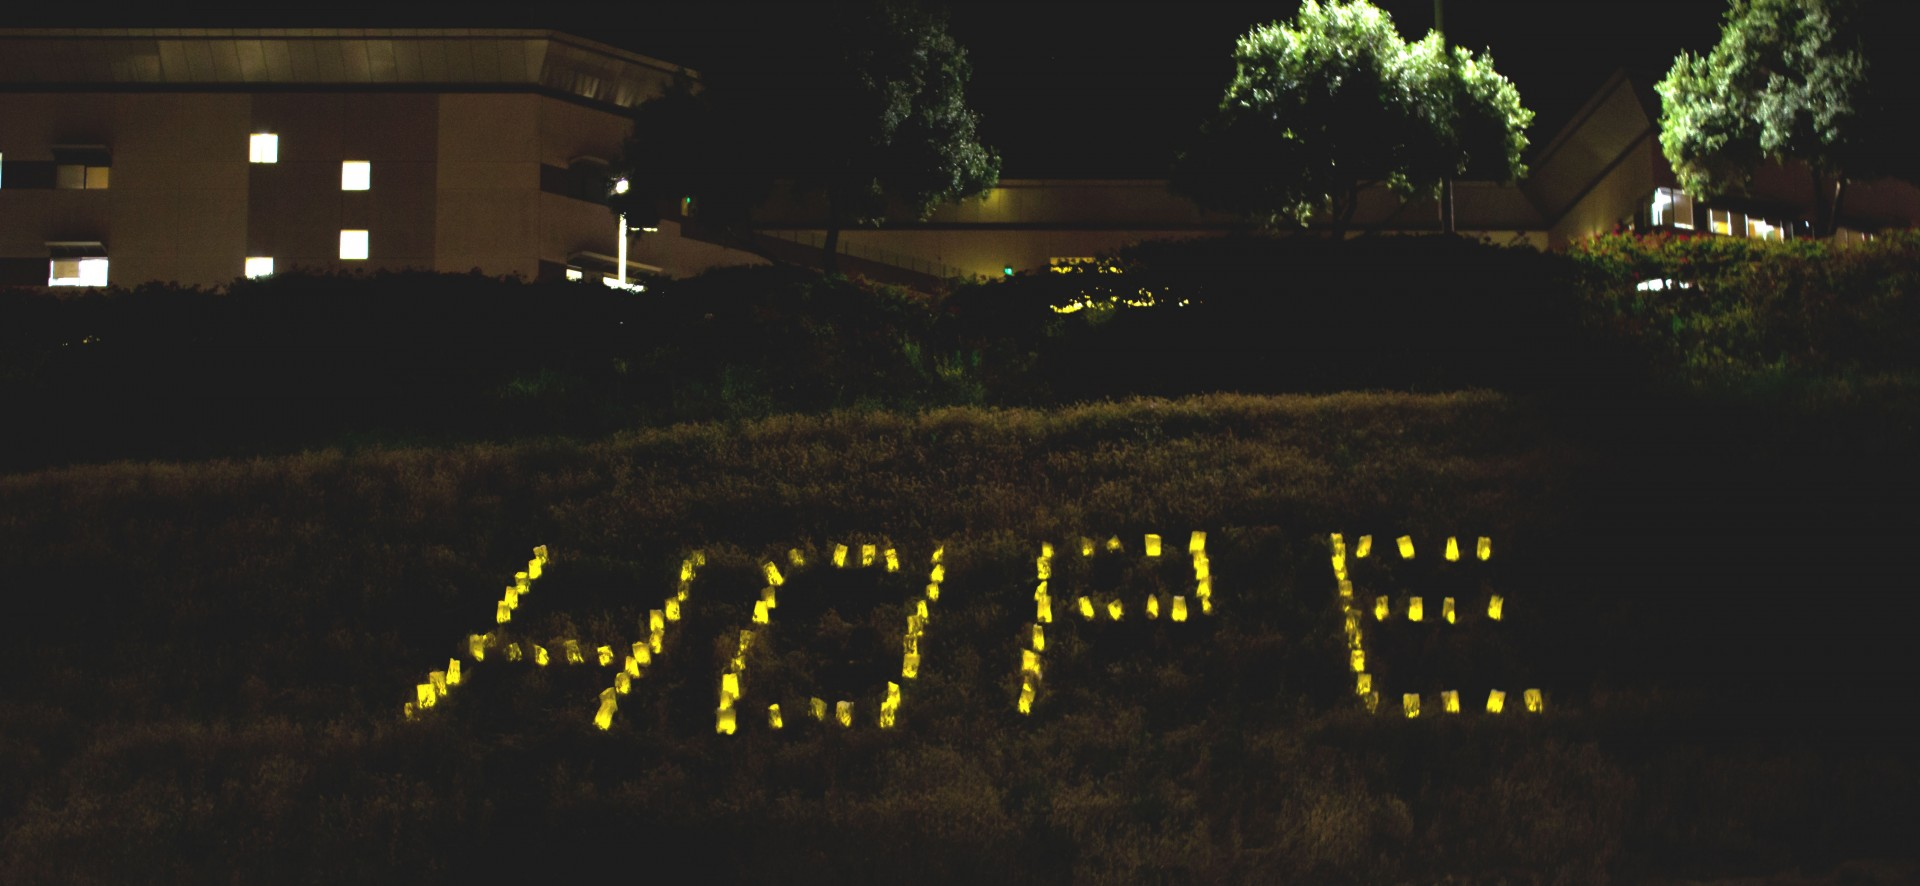 Relay for Life = Hope